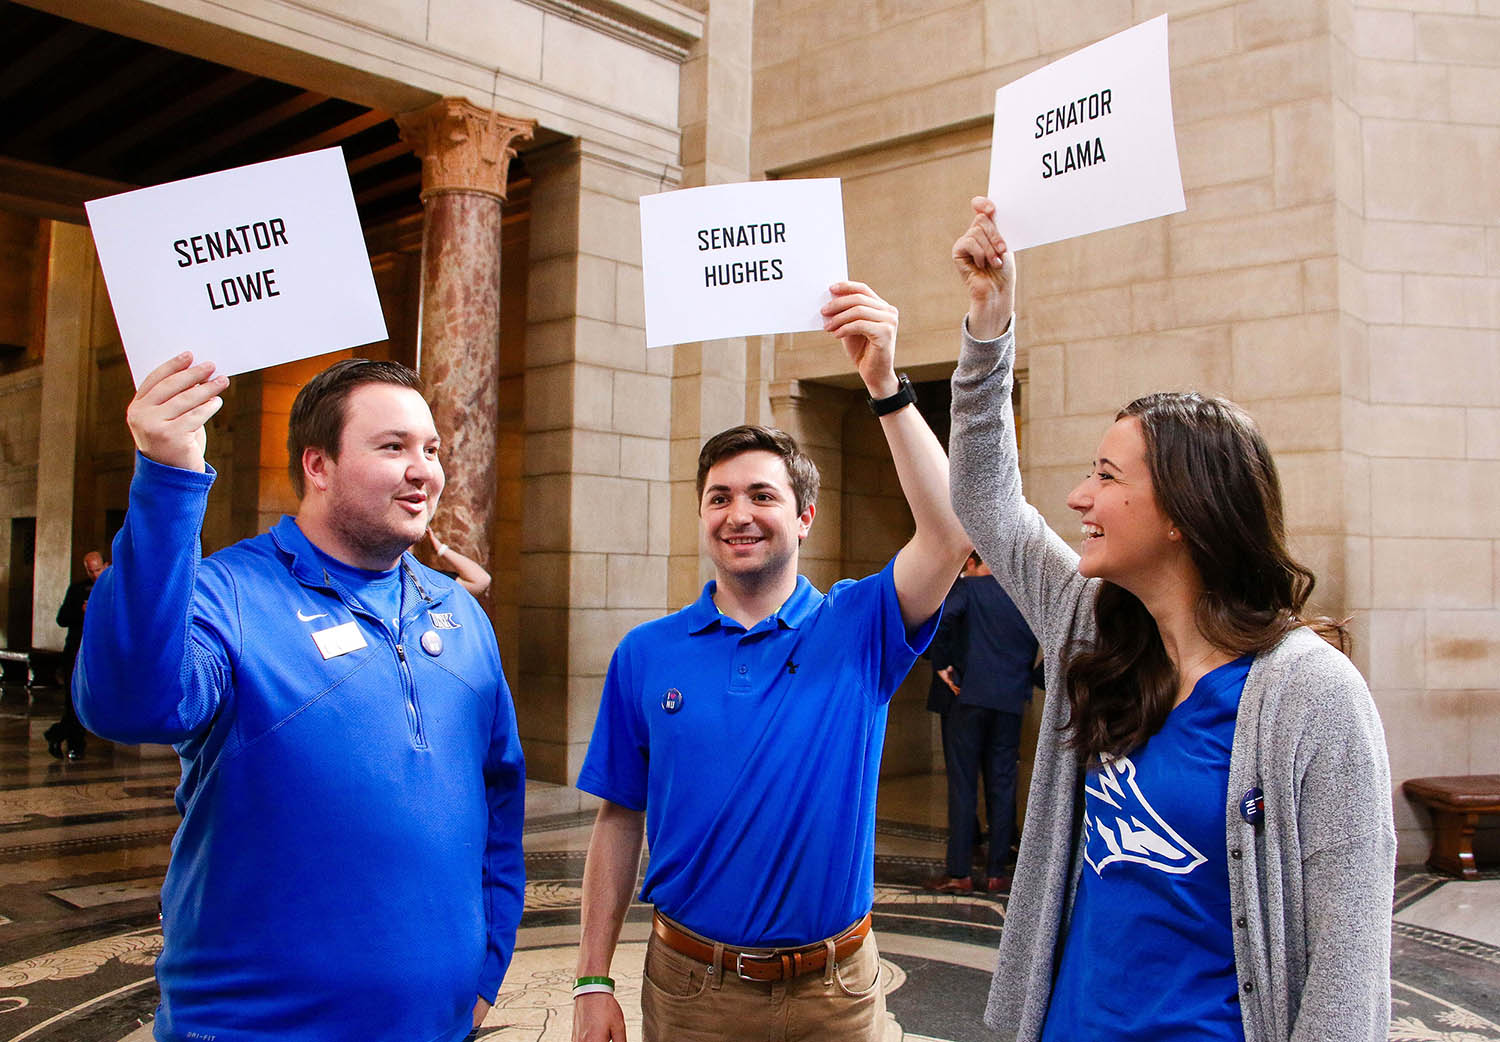 """From left, Taylor Janicek, Trey Janicek and Nicole Kent are pictured during """"I Love NU Advocacy Day"""" at the state Capitol in Lincoln in March 2019."""